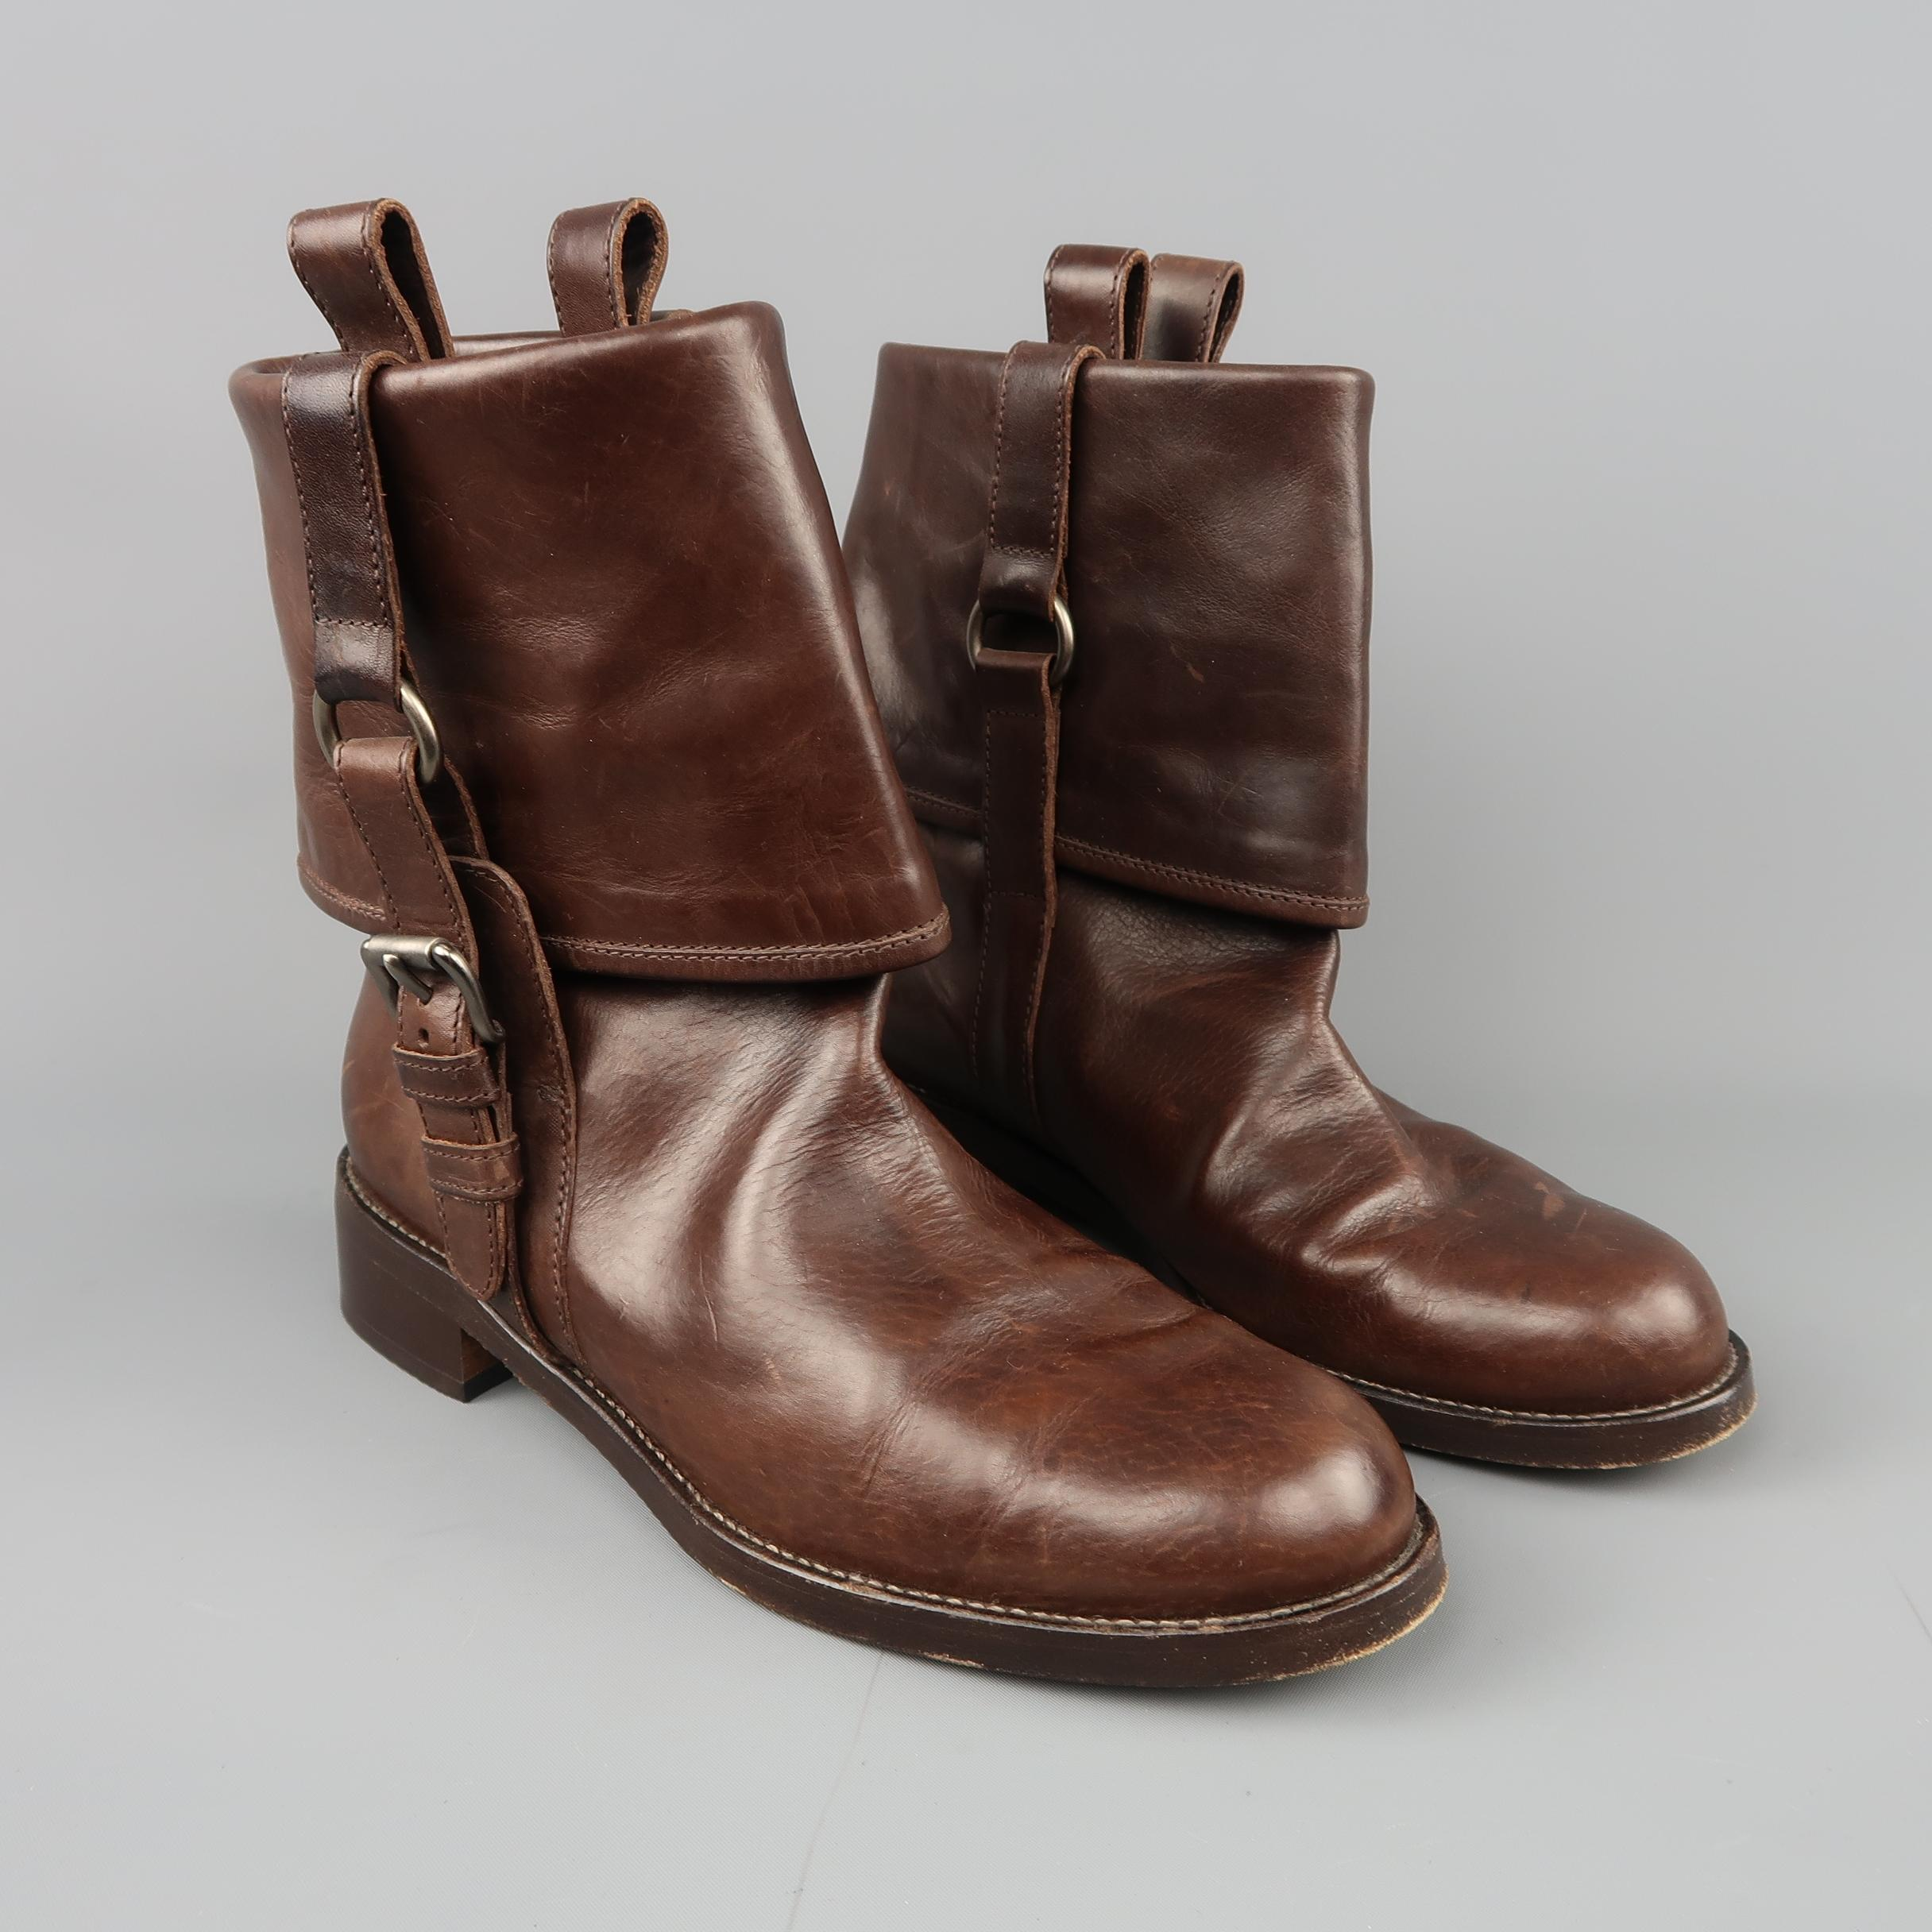 buy cheap get to buy Marni Leather Fold-Over Boots discount wholesale price outlet store locations rSwykp4dmB